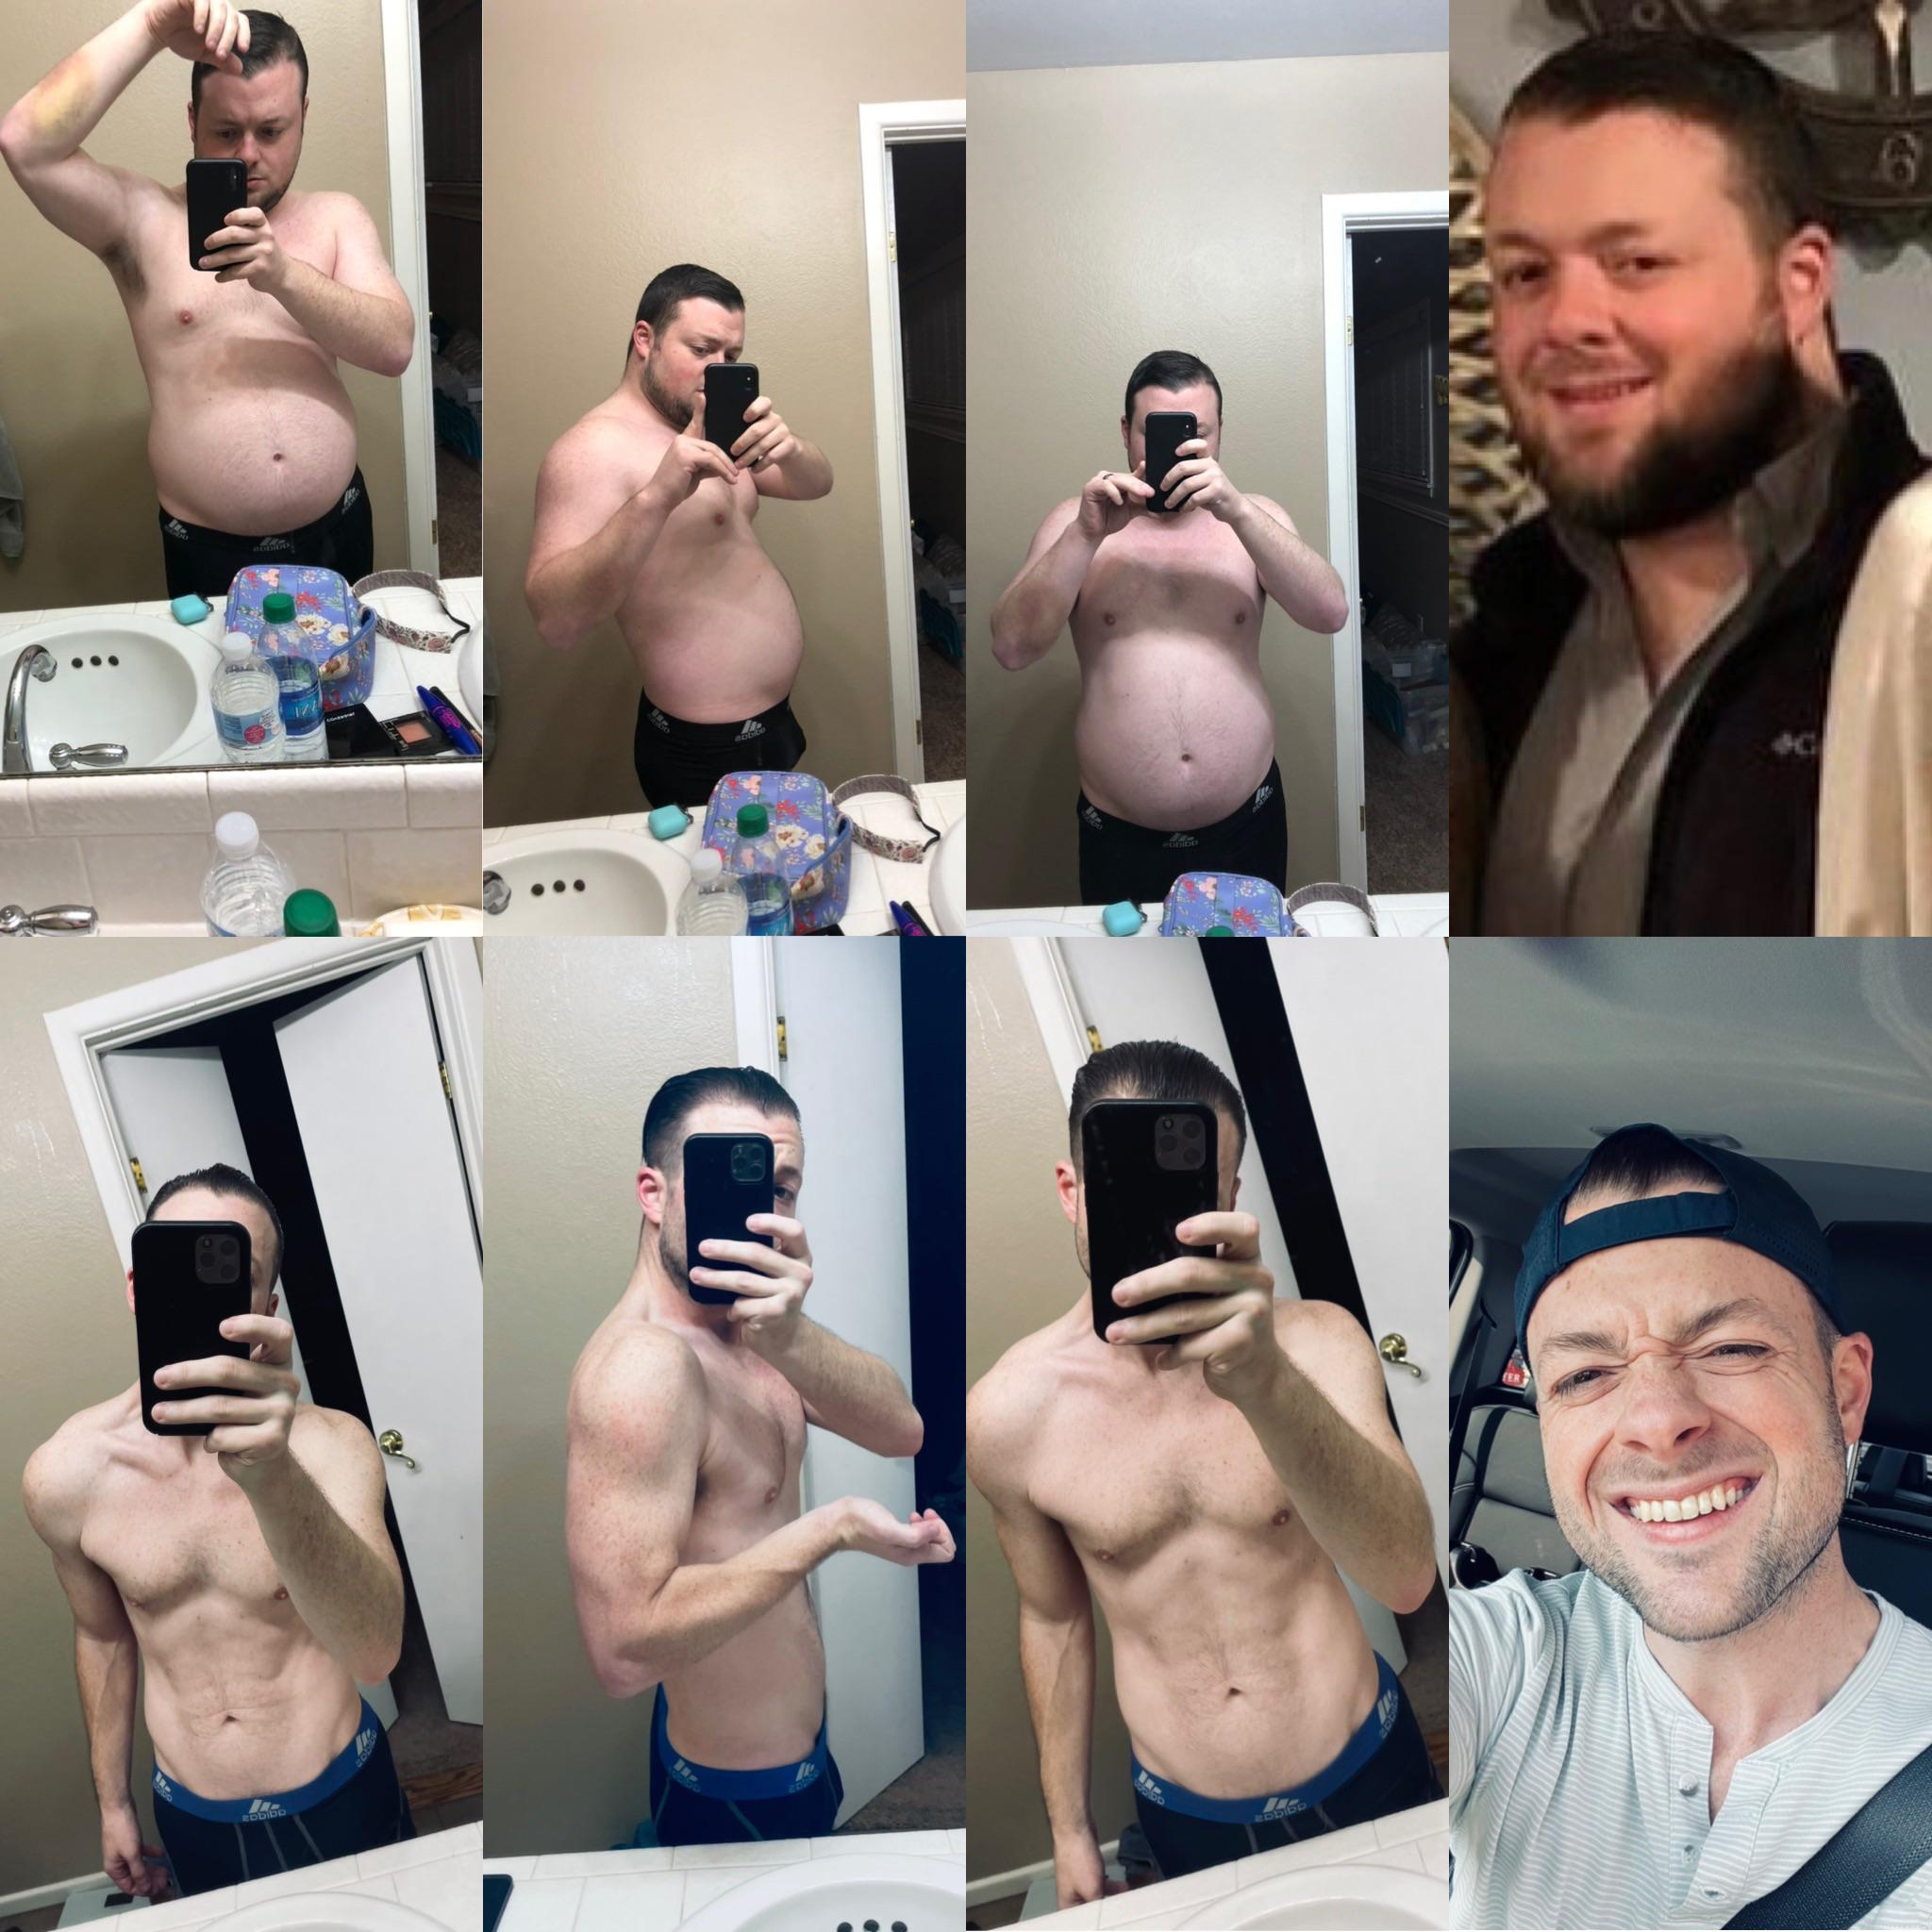 5 foot 9 Male Before and After 80 lbs Fat Loss 225 lbs to 145 lbs